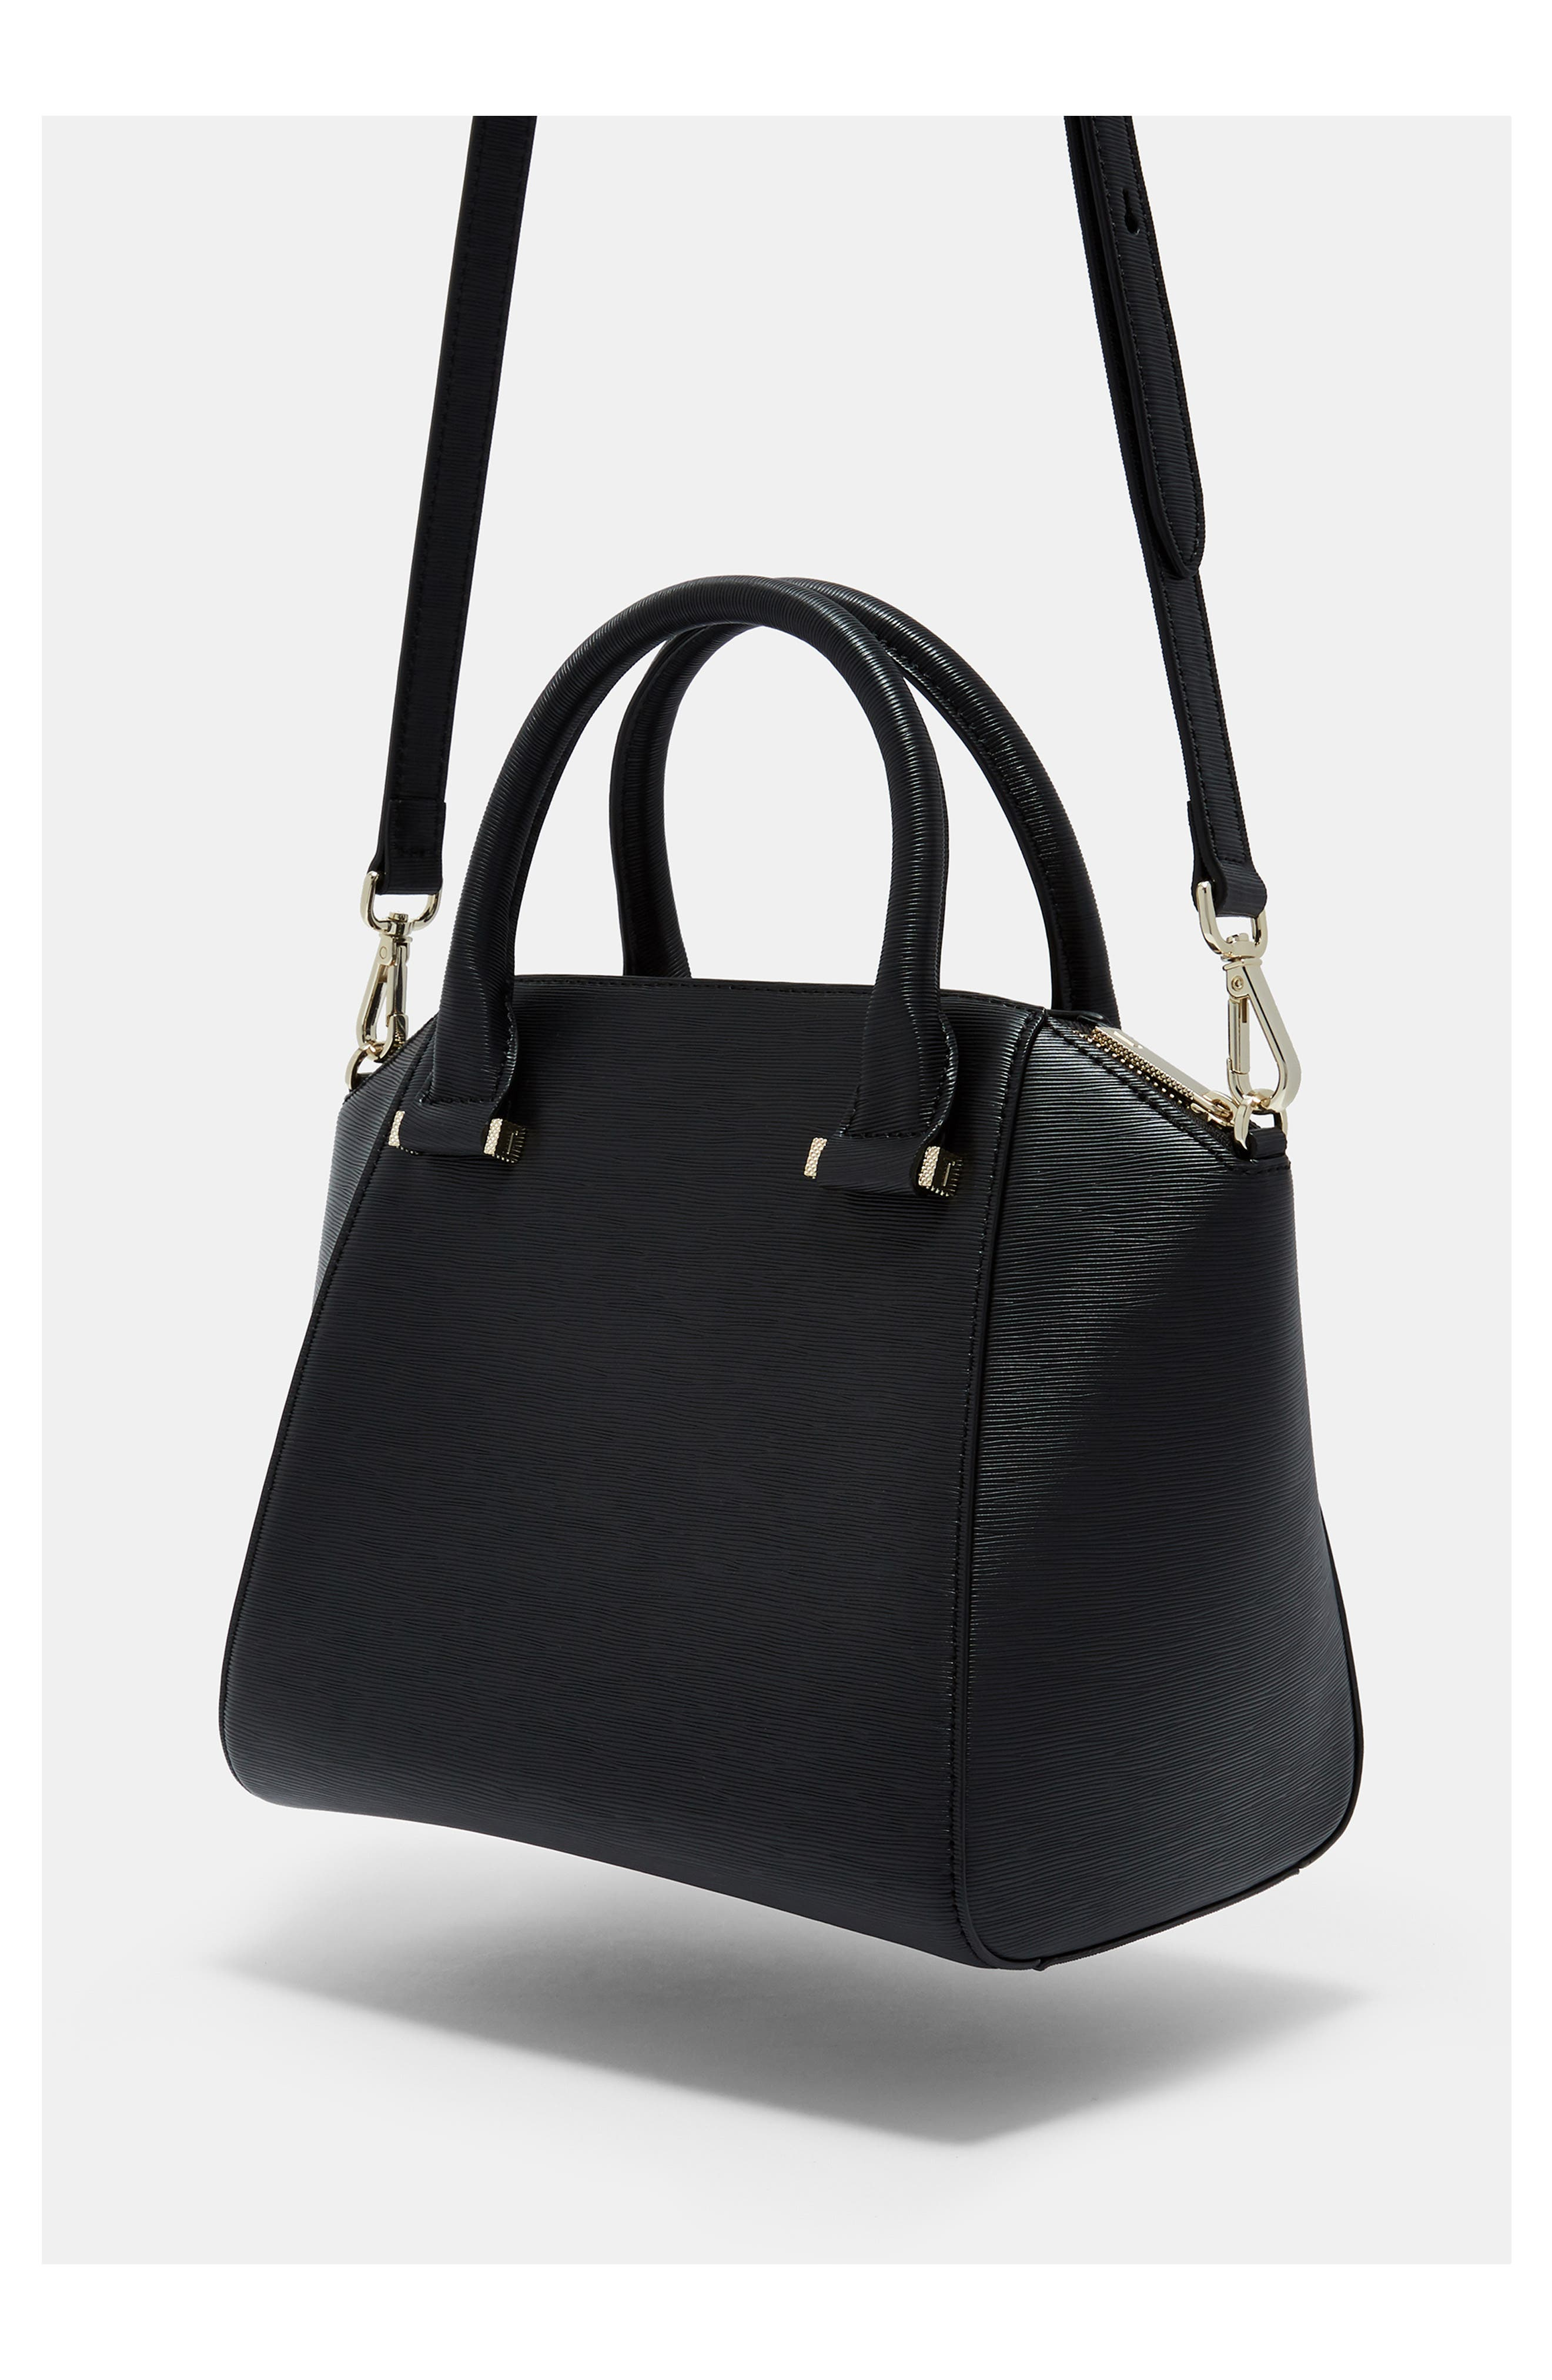 TED BAKER LONDON, Bow Tote, Alternate thumbnail 9, color, 001